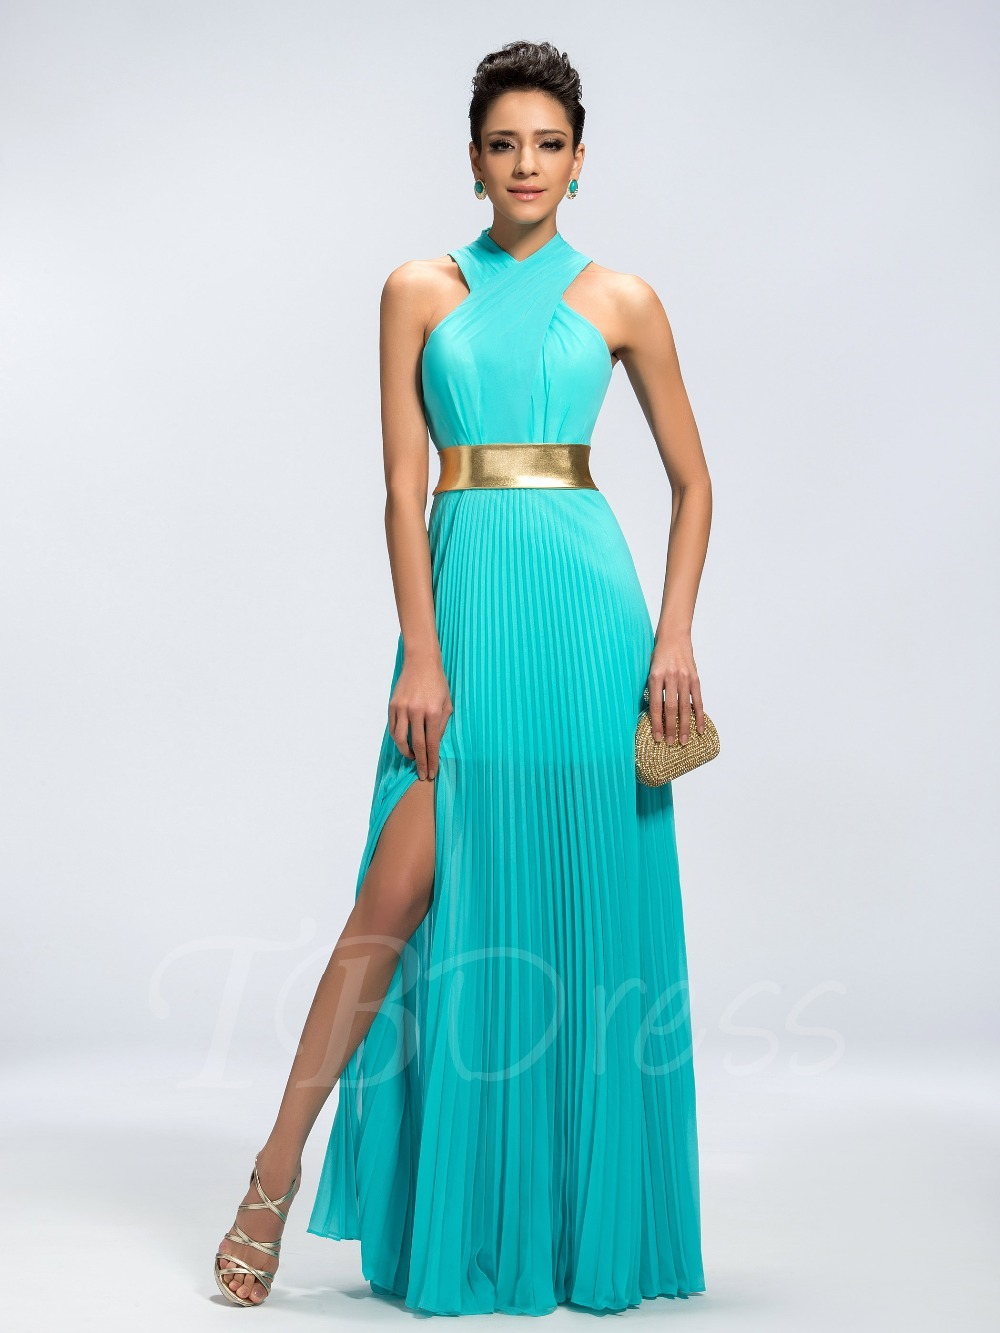 High Quality Turquoise Halter Dress-Buy Cheap Turquoise Halter ...